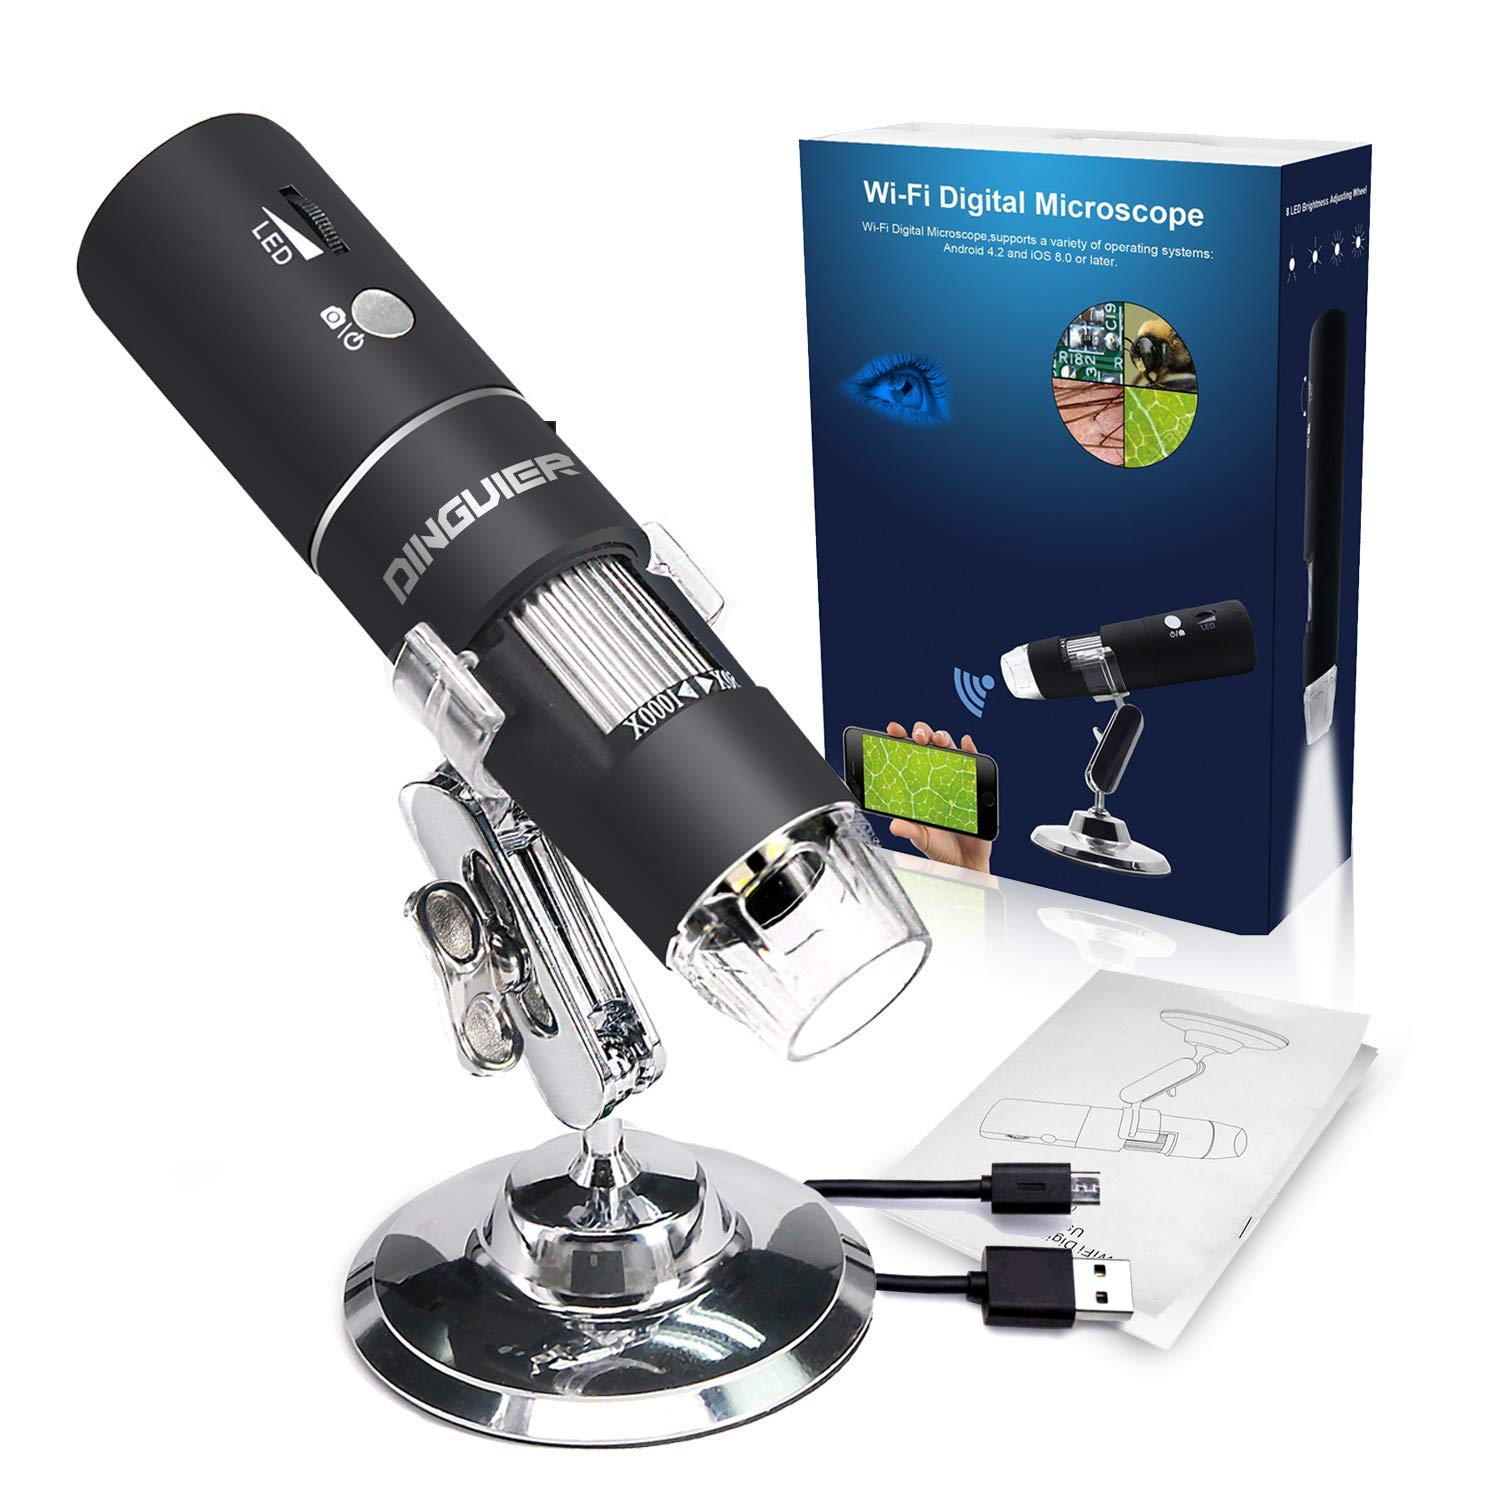 GOTOTOP Digital Microscope Portable Handheld Electronic 1000X Zoom 8 LED USB Microscope Magnifier Endoscope Mini Camera with Metal Stand for Industrial Testing